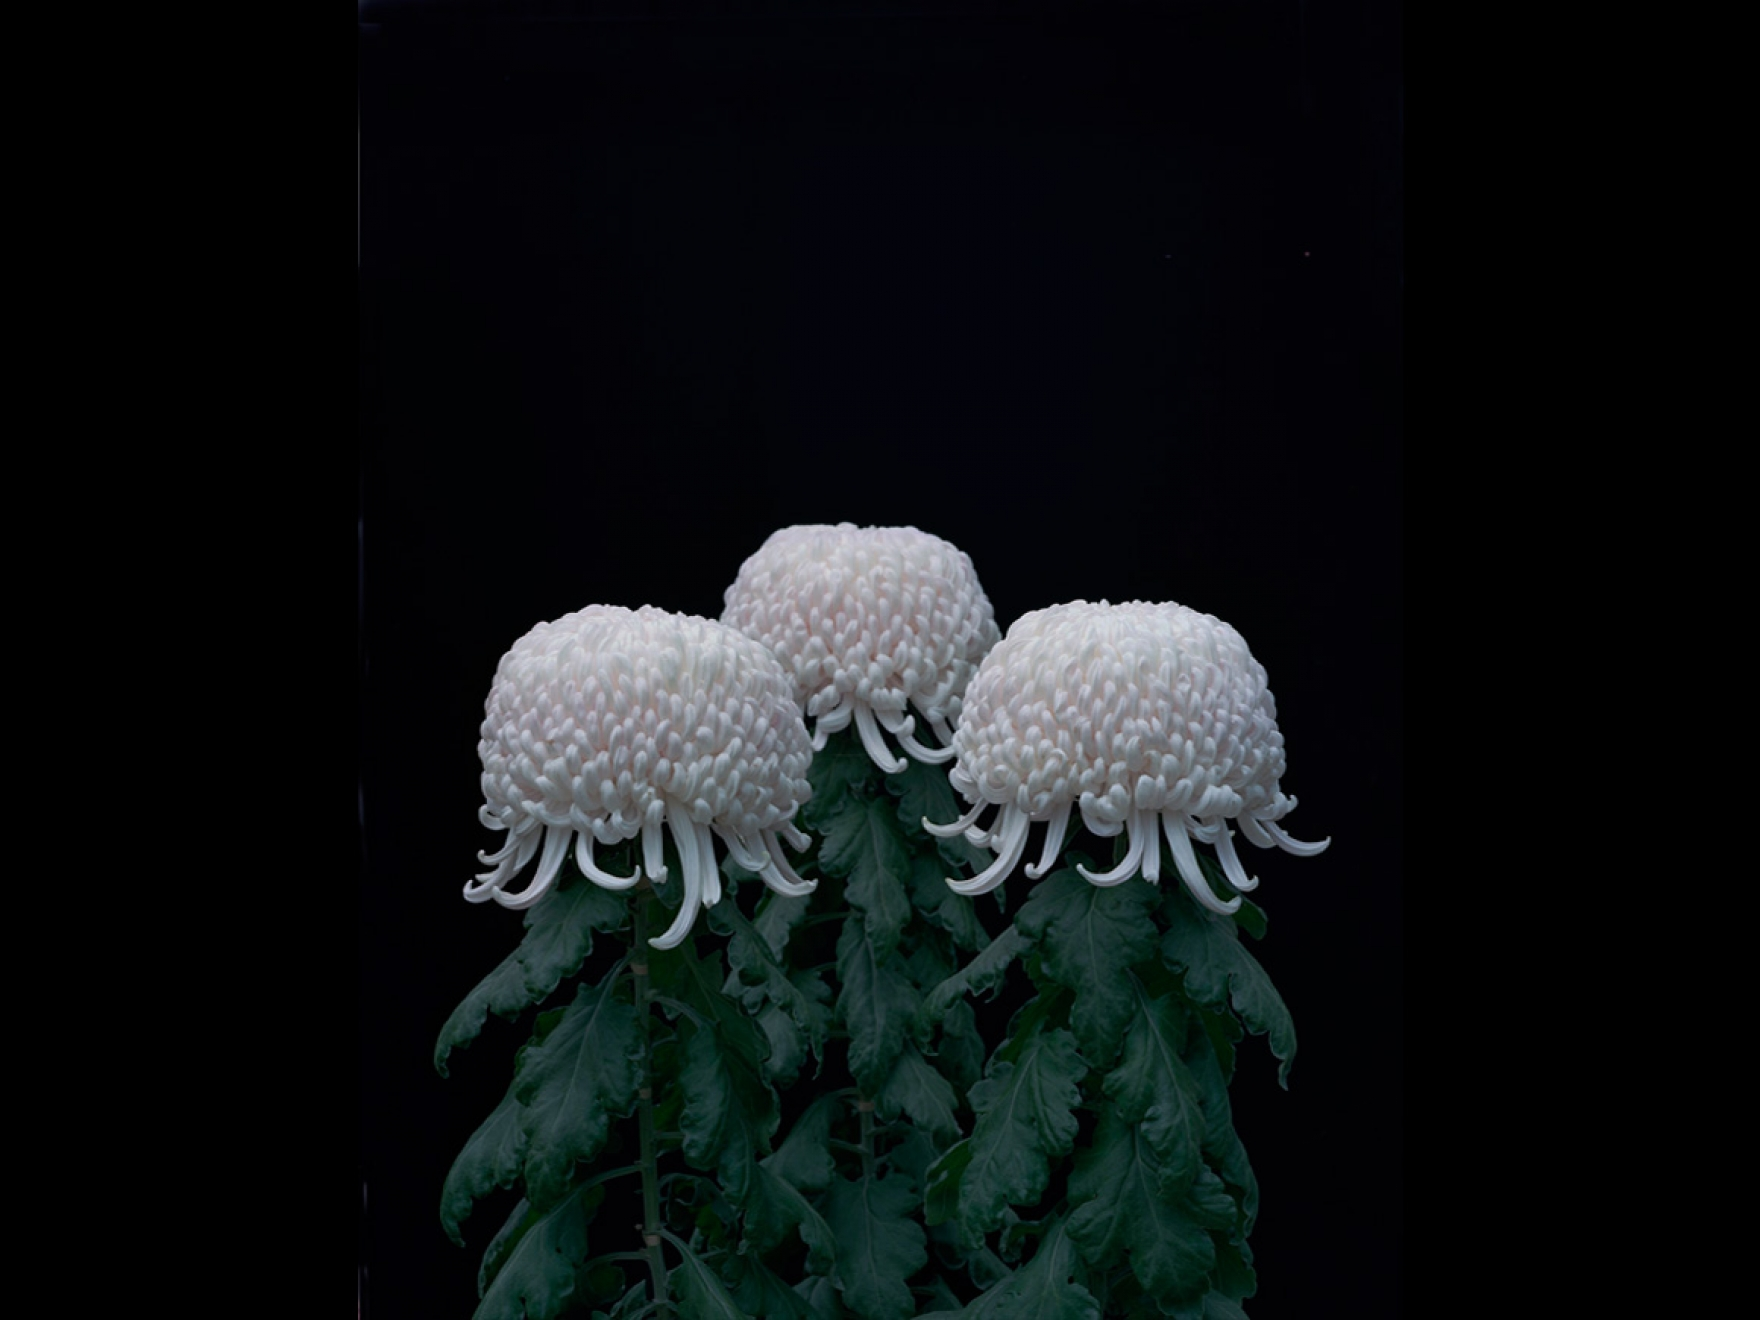 Tomoko Yoneda, Chrysanthemums from the series Cumulus, 2011